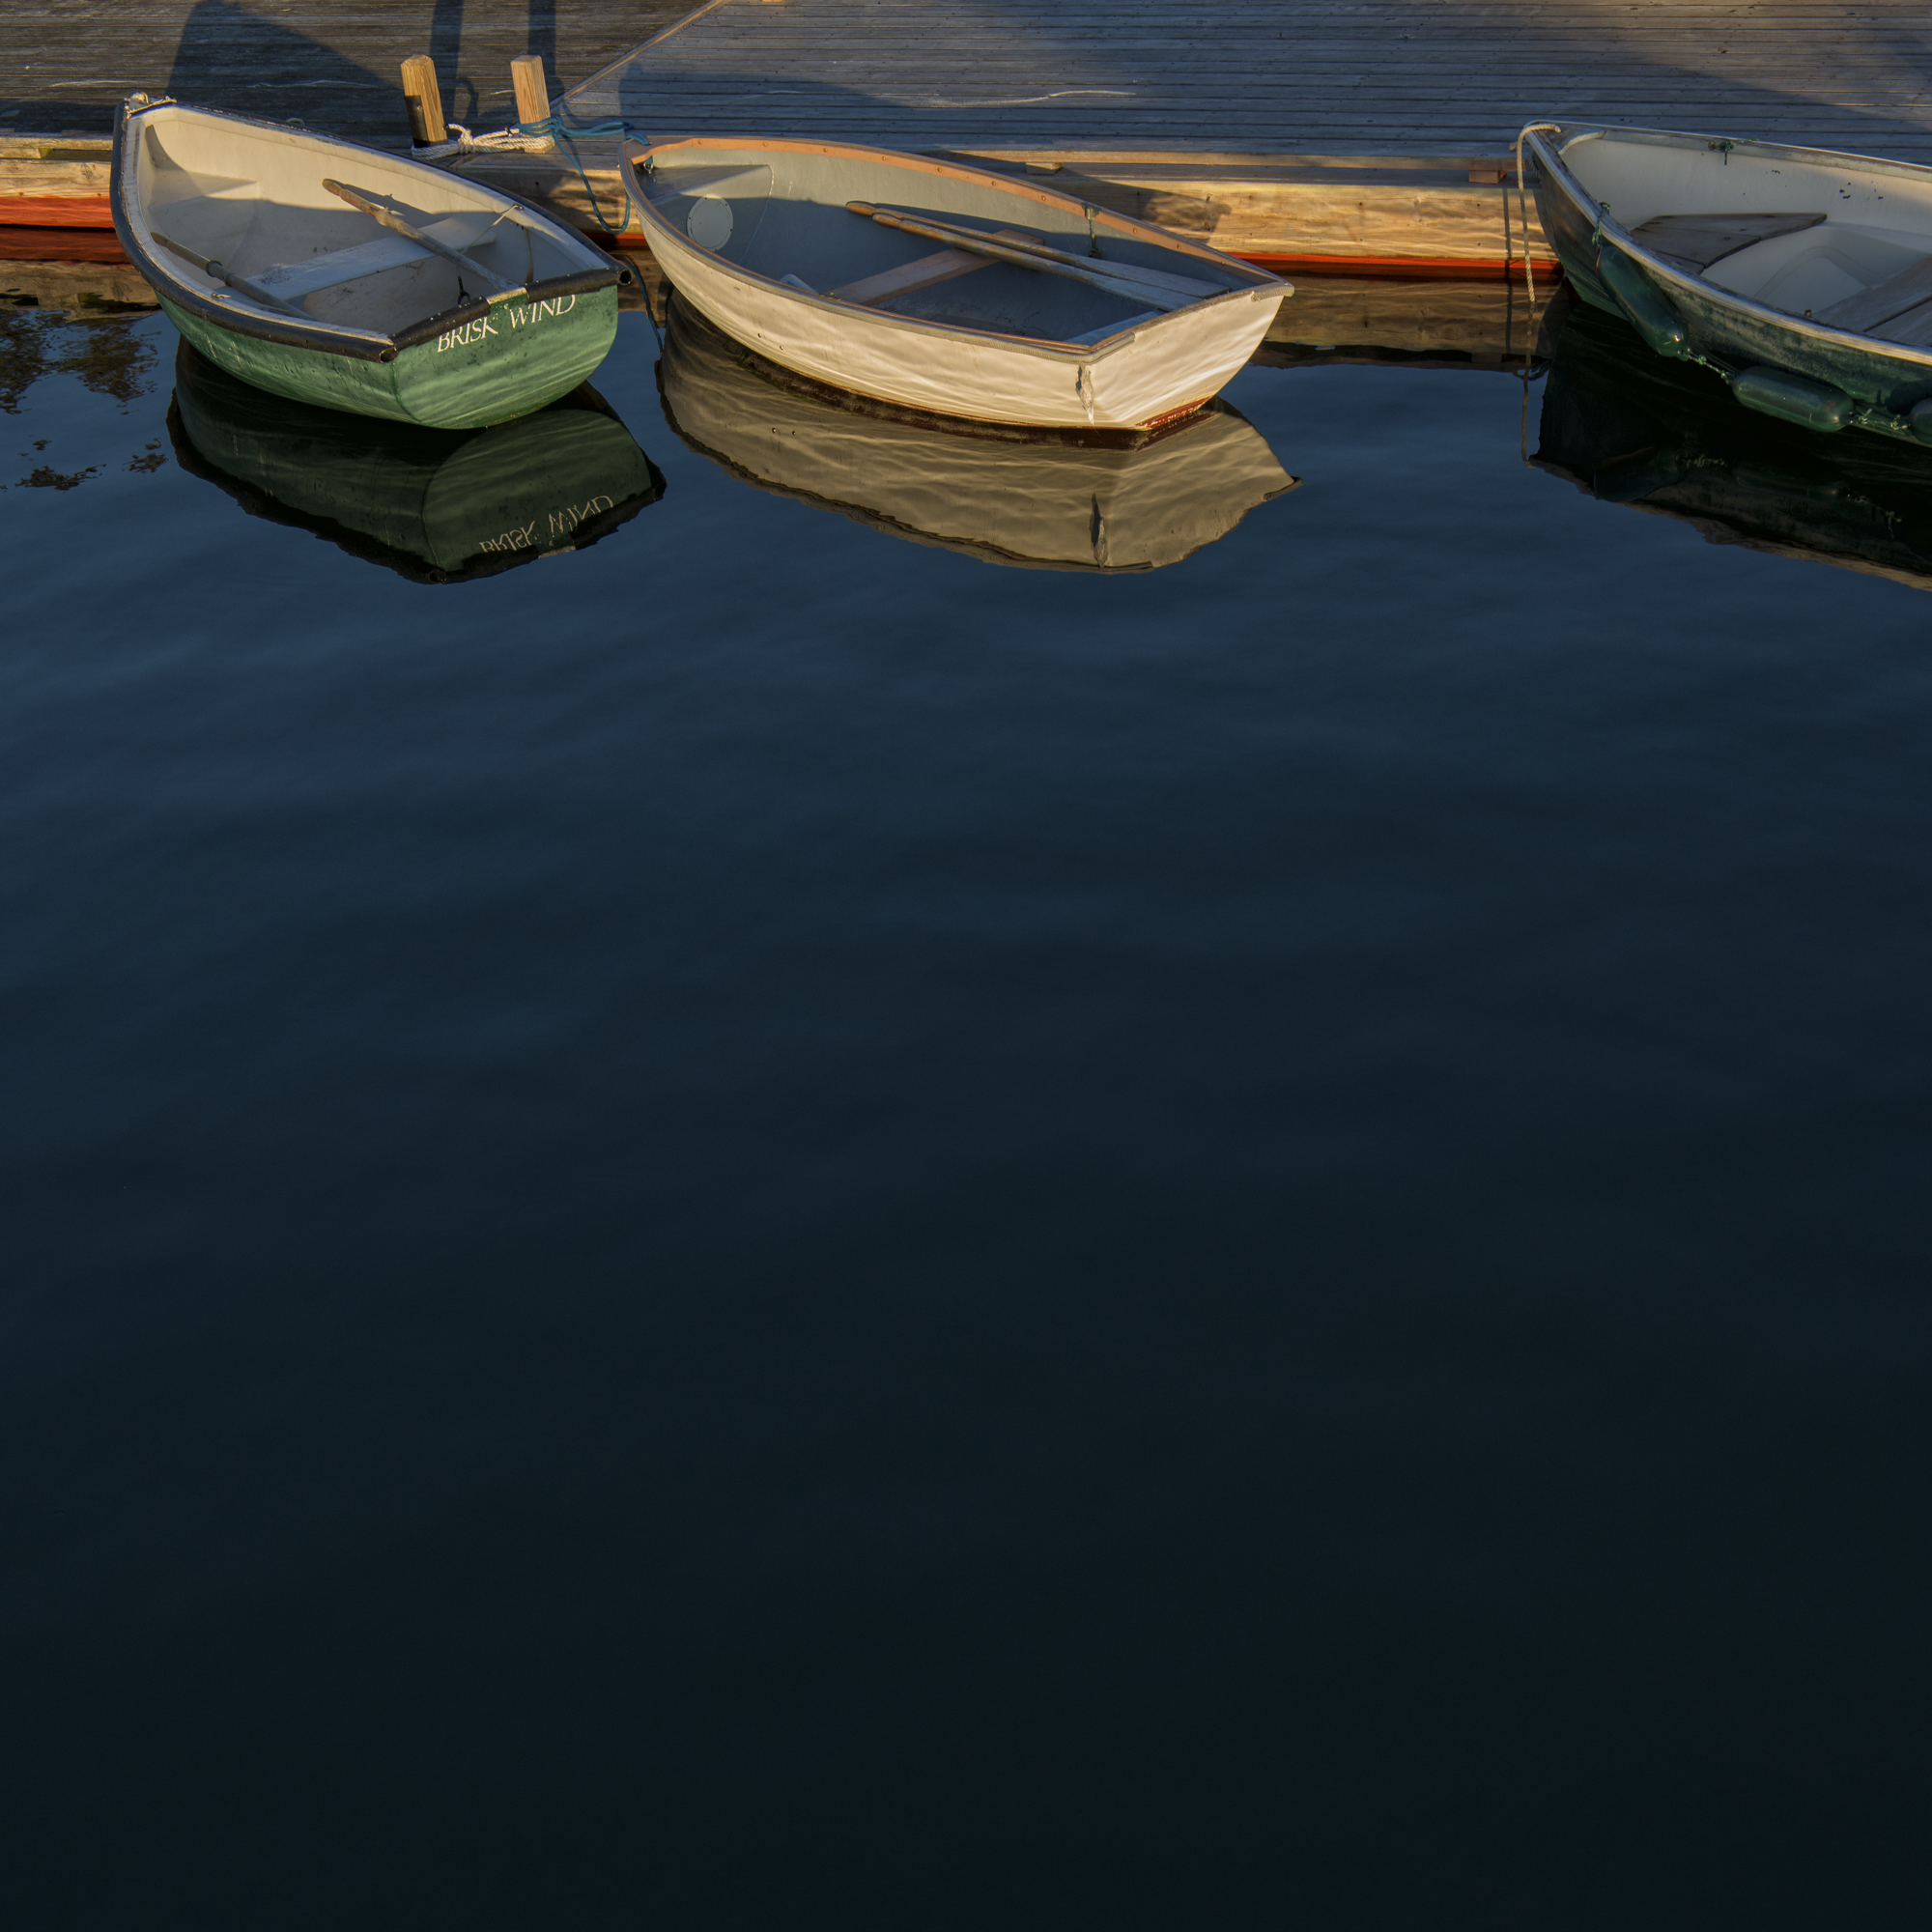 Dinghies At Islesford Dock, Little Cranberry Island, Maine